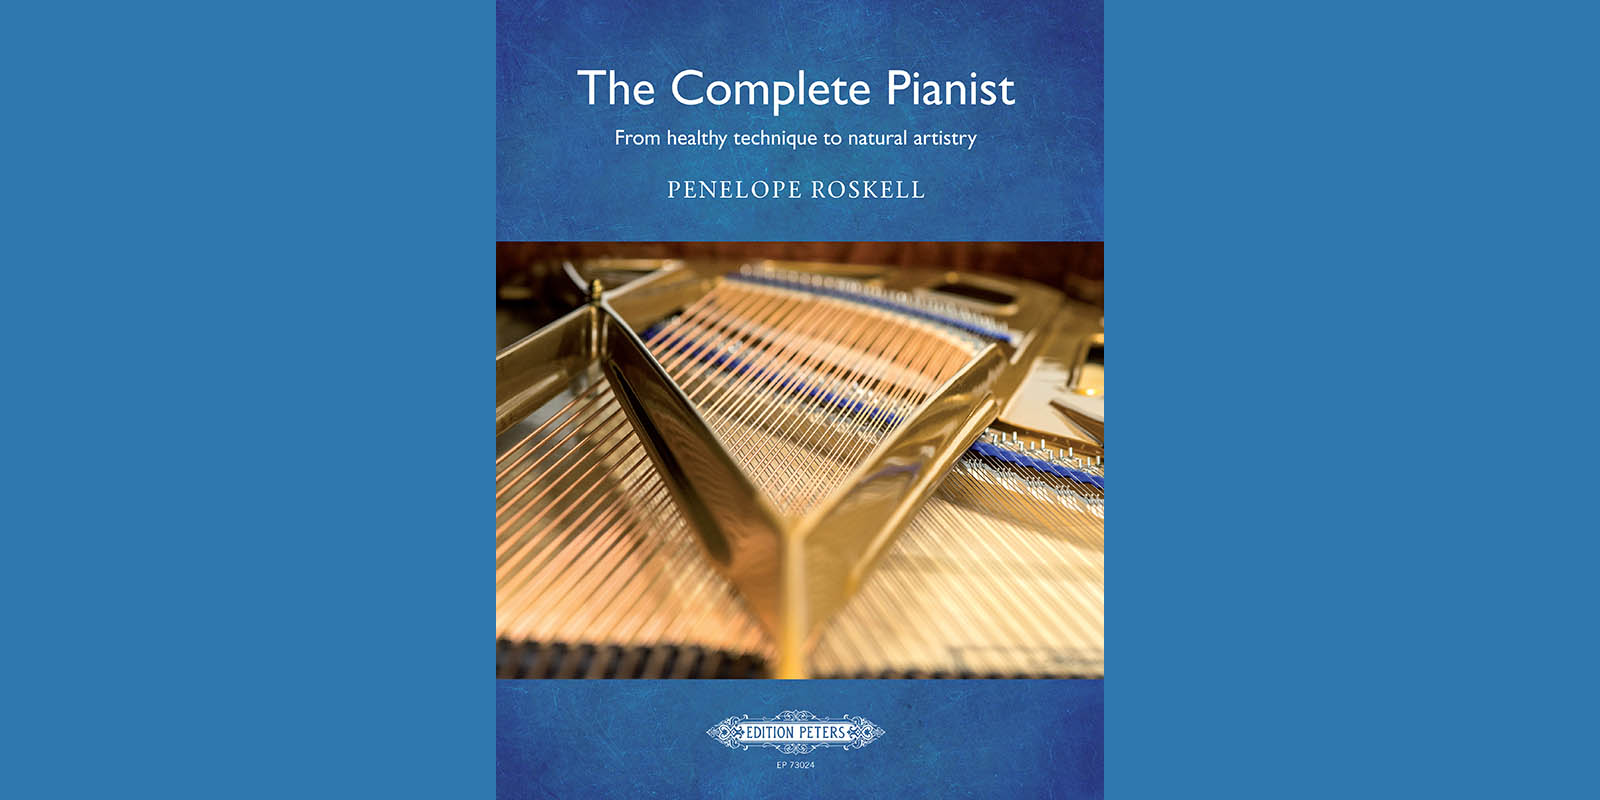 The Complete Pianist by Penelope Roskell